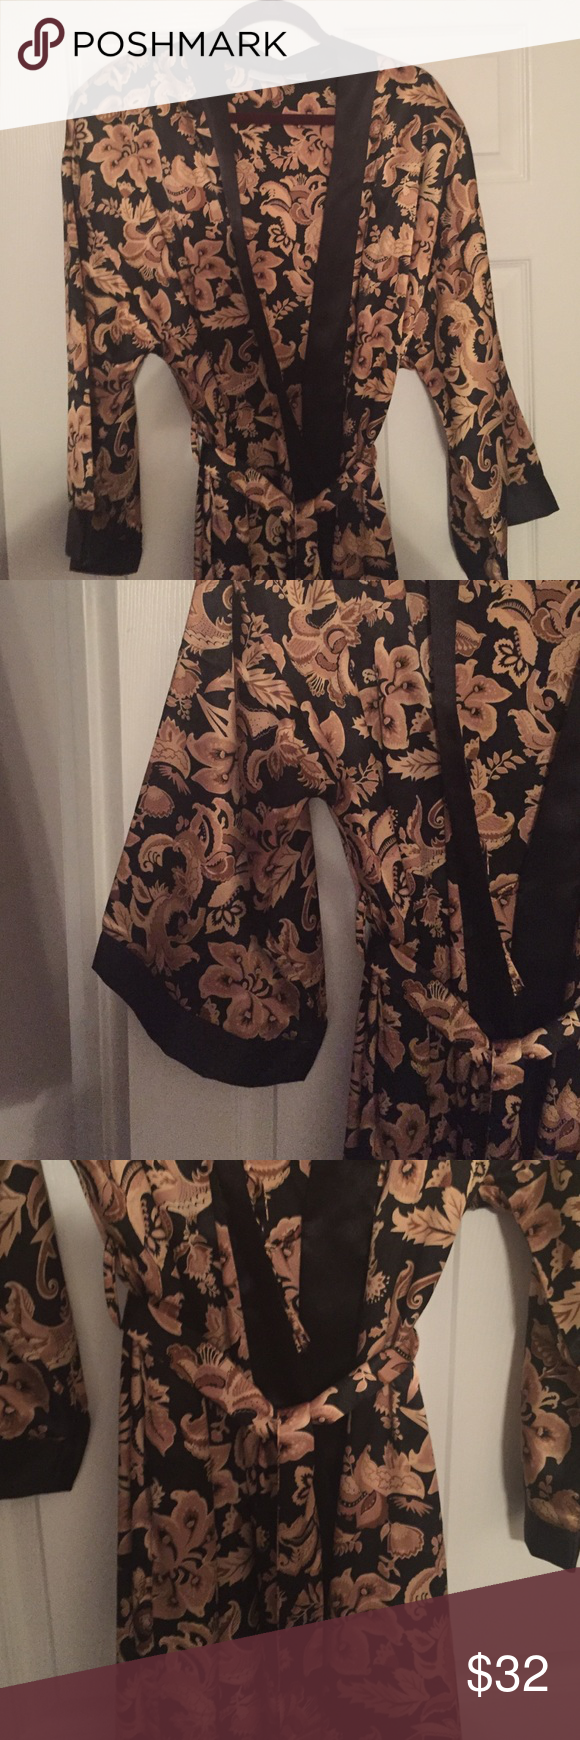 NWOT Satin, Sexy Robe in Black and Rich Gold This luxurious robe feels delightful on the skin. Don't exit the shower in terry cloth, exit in something elegant and sexy. (Fits 16/18) Adonna Intimates & Sleepwear Robes